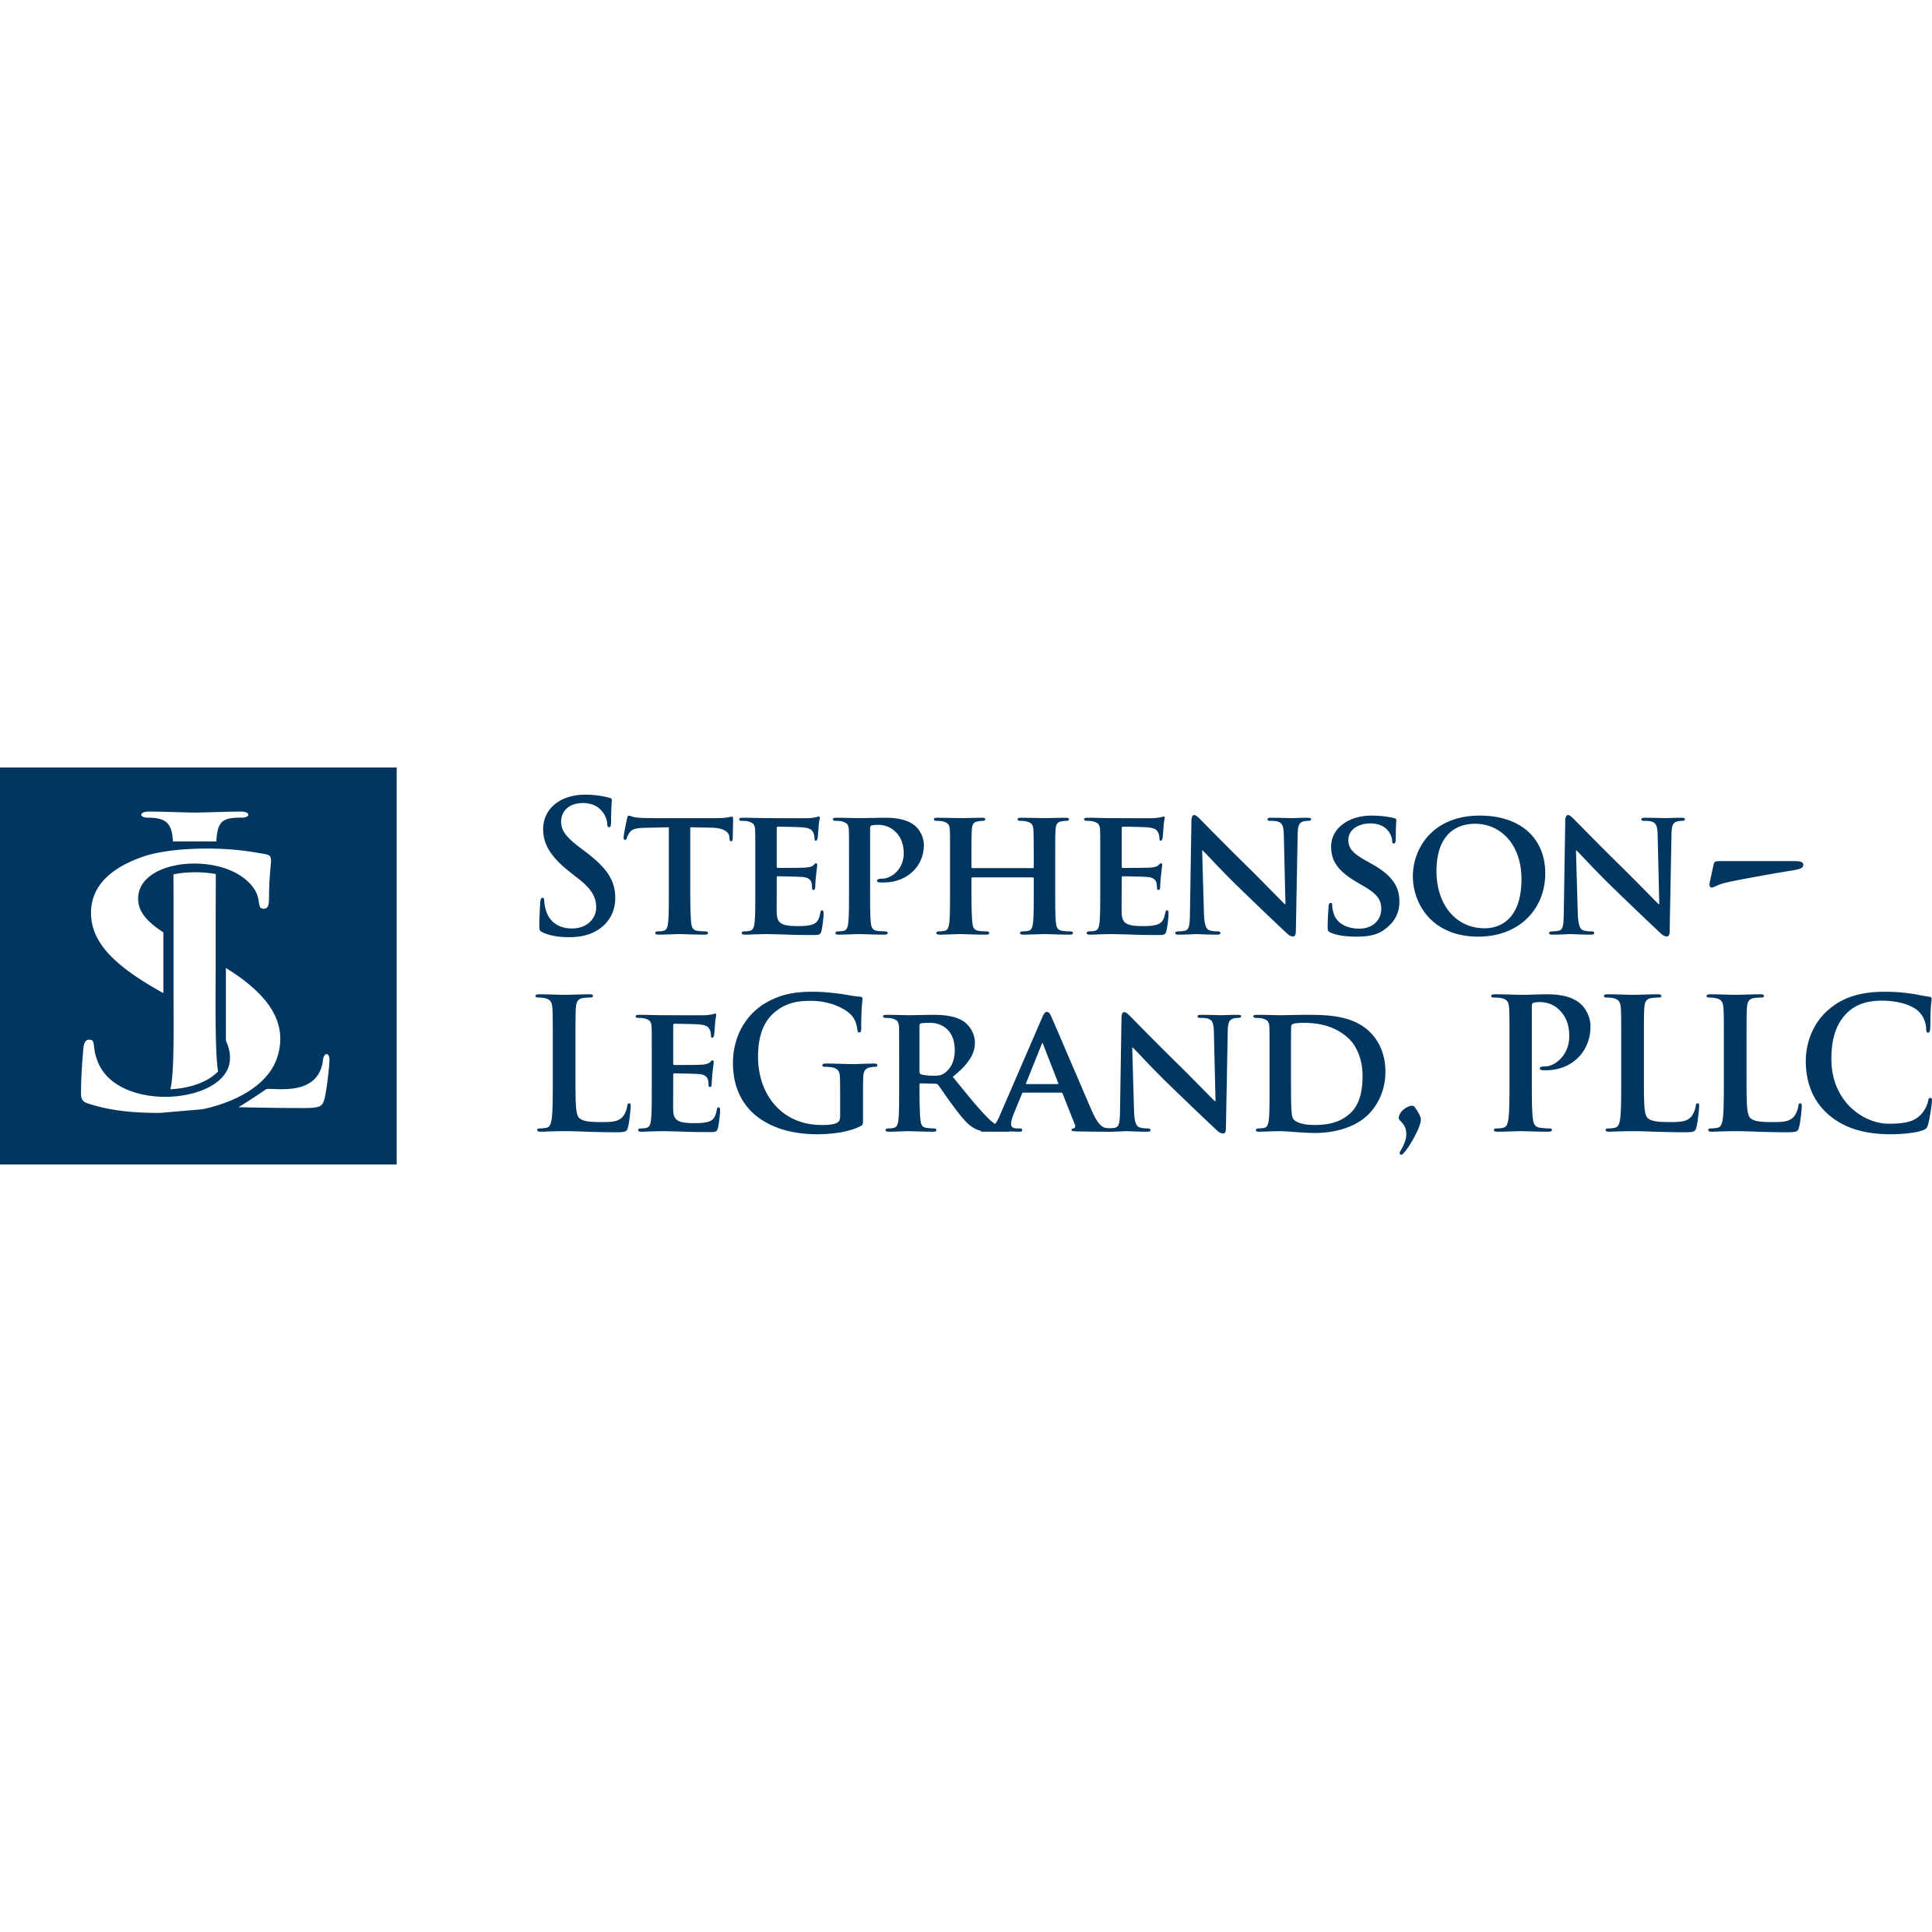 Stephenson, LeGrand & Pfeil, PLLC Accounting Firm